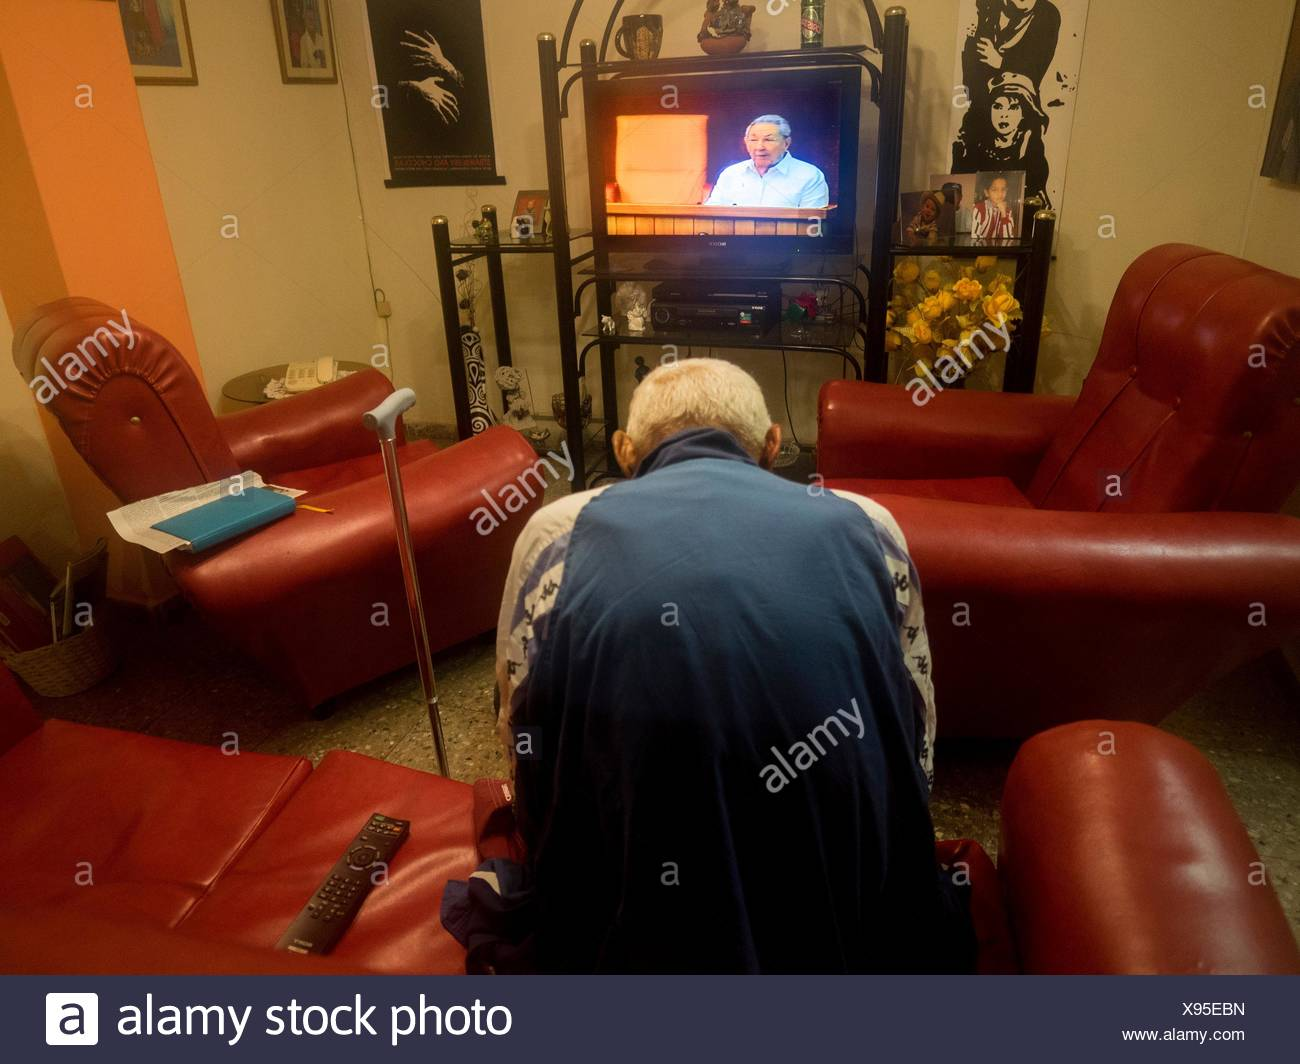 A man watches a speech by Raul Castro on television. - Stock Image